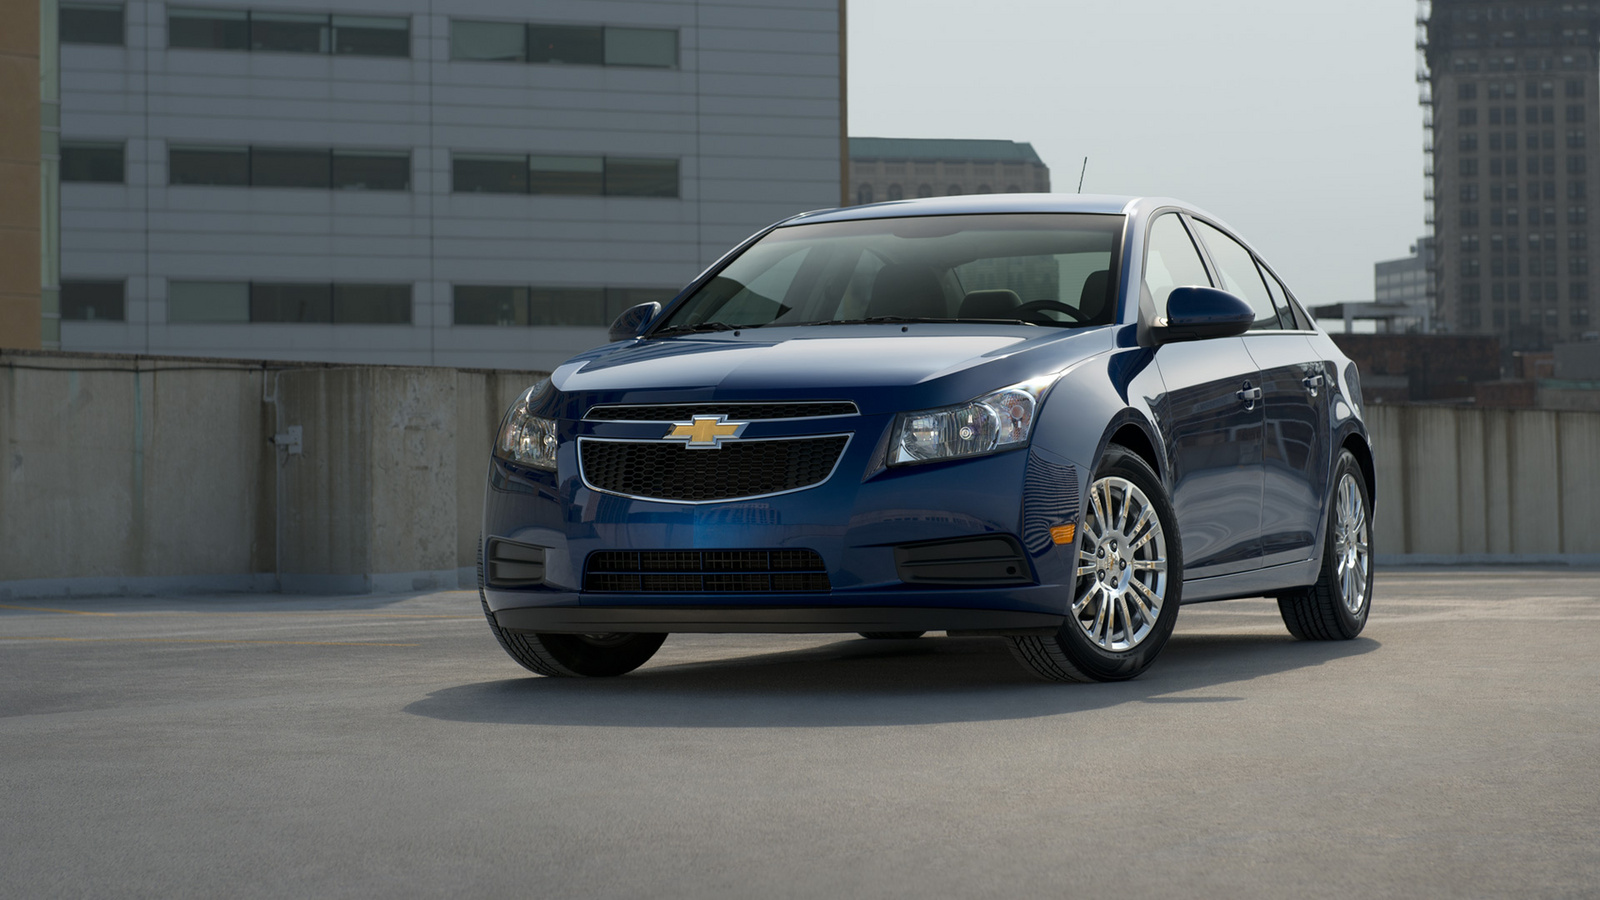 2013 Chevrolet Cruze - Review - CarGurus